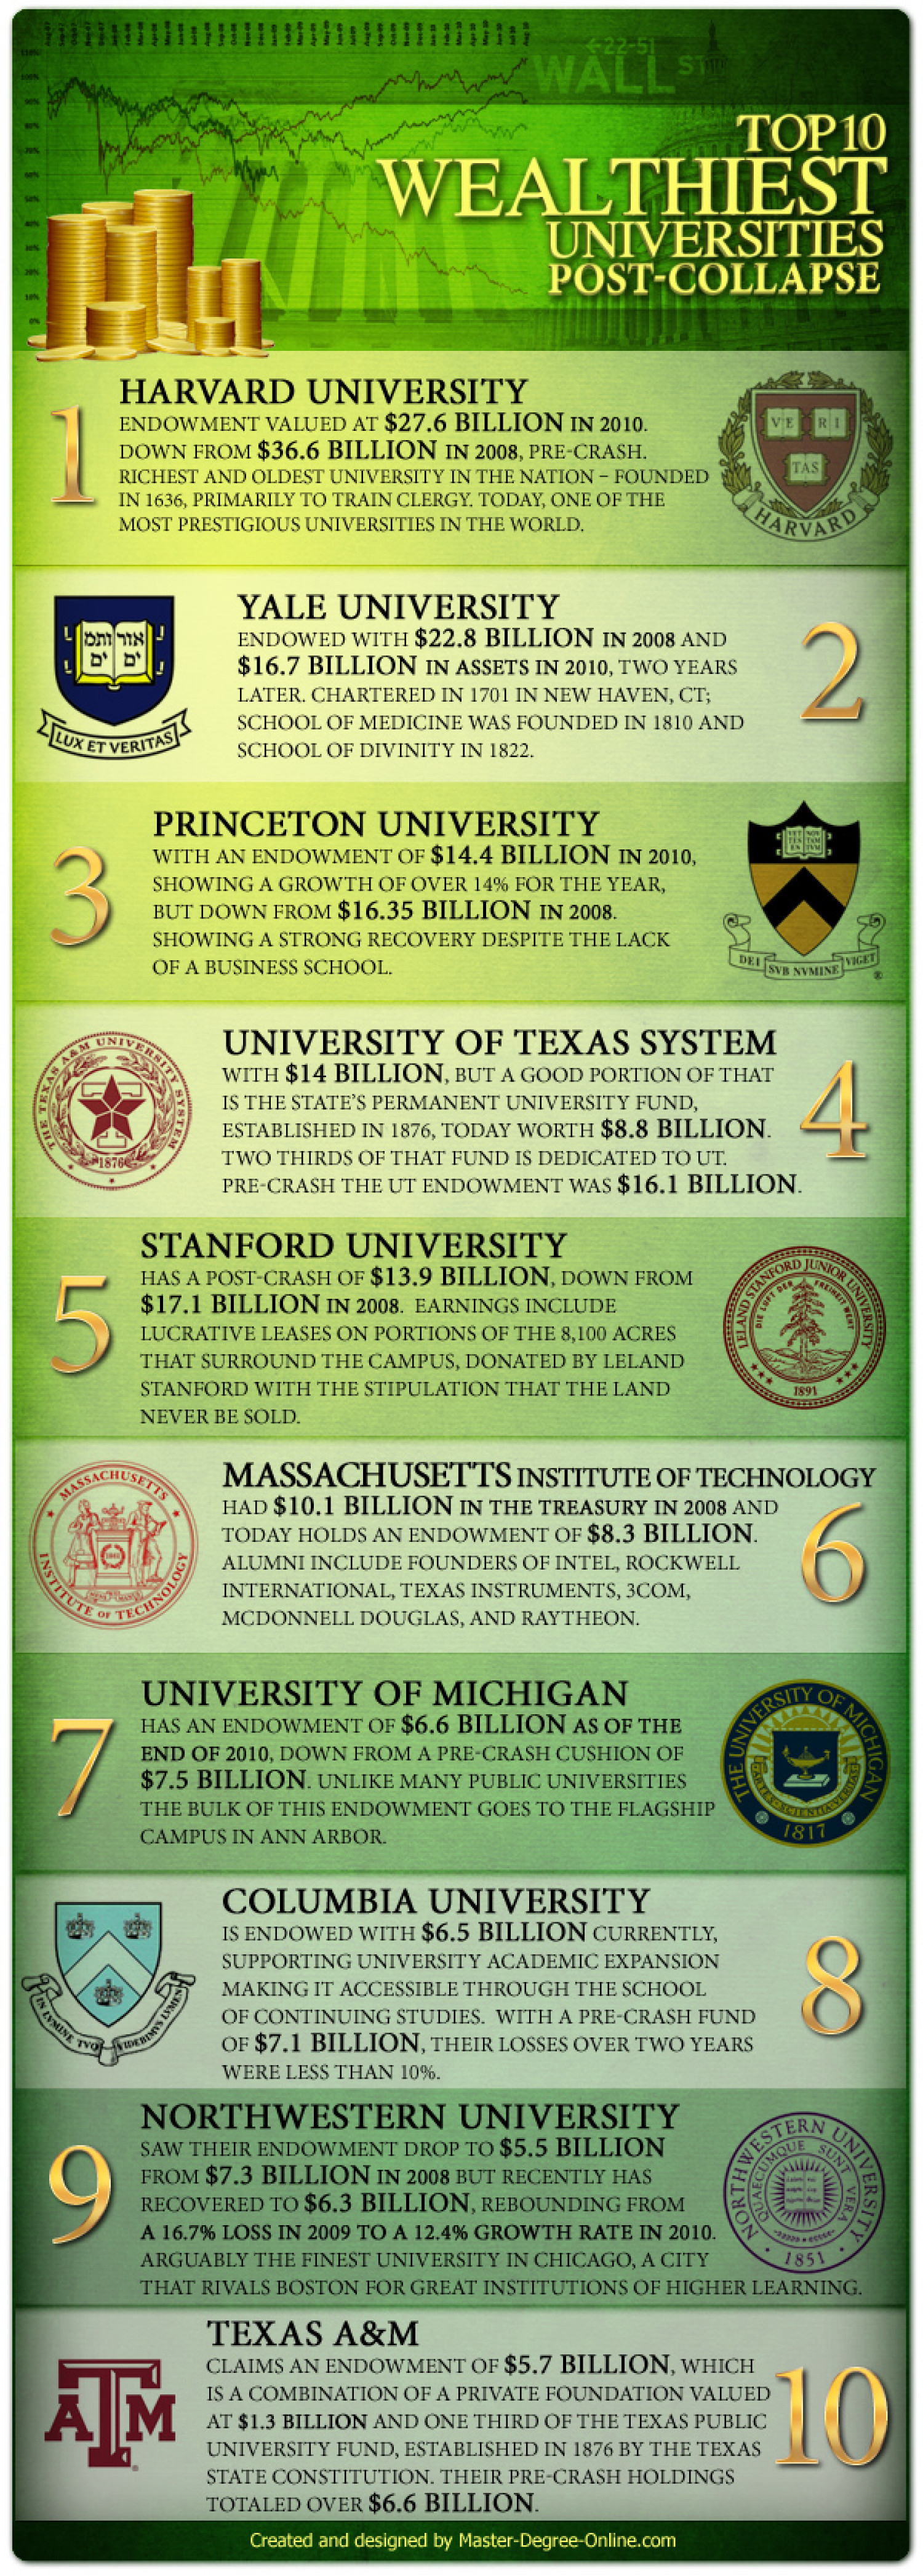 Top 10 Wealthiest Universities Post-Collapse Infographic